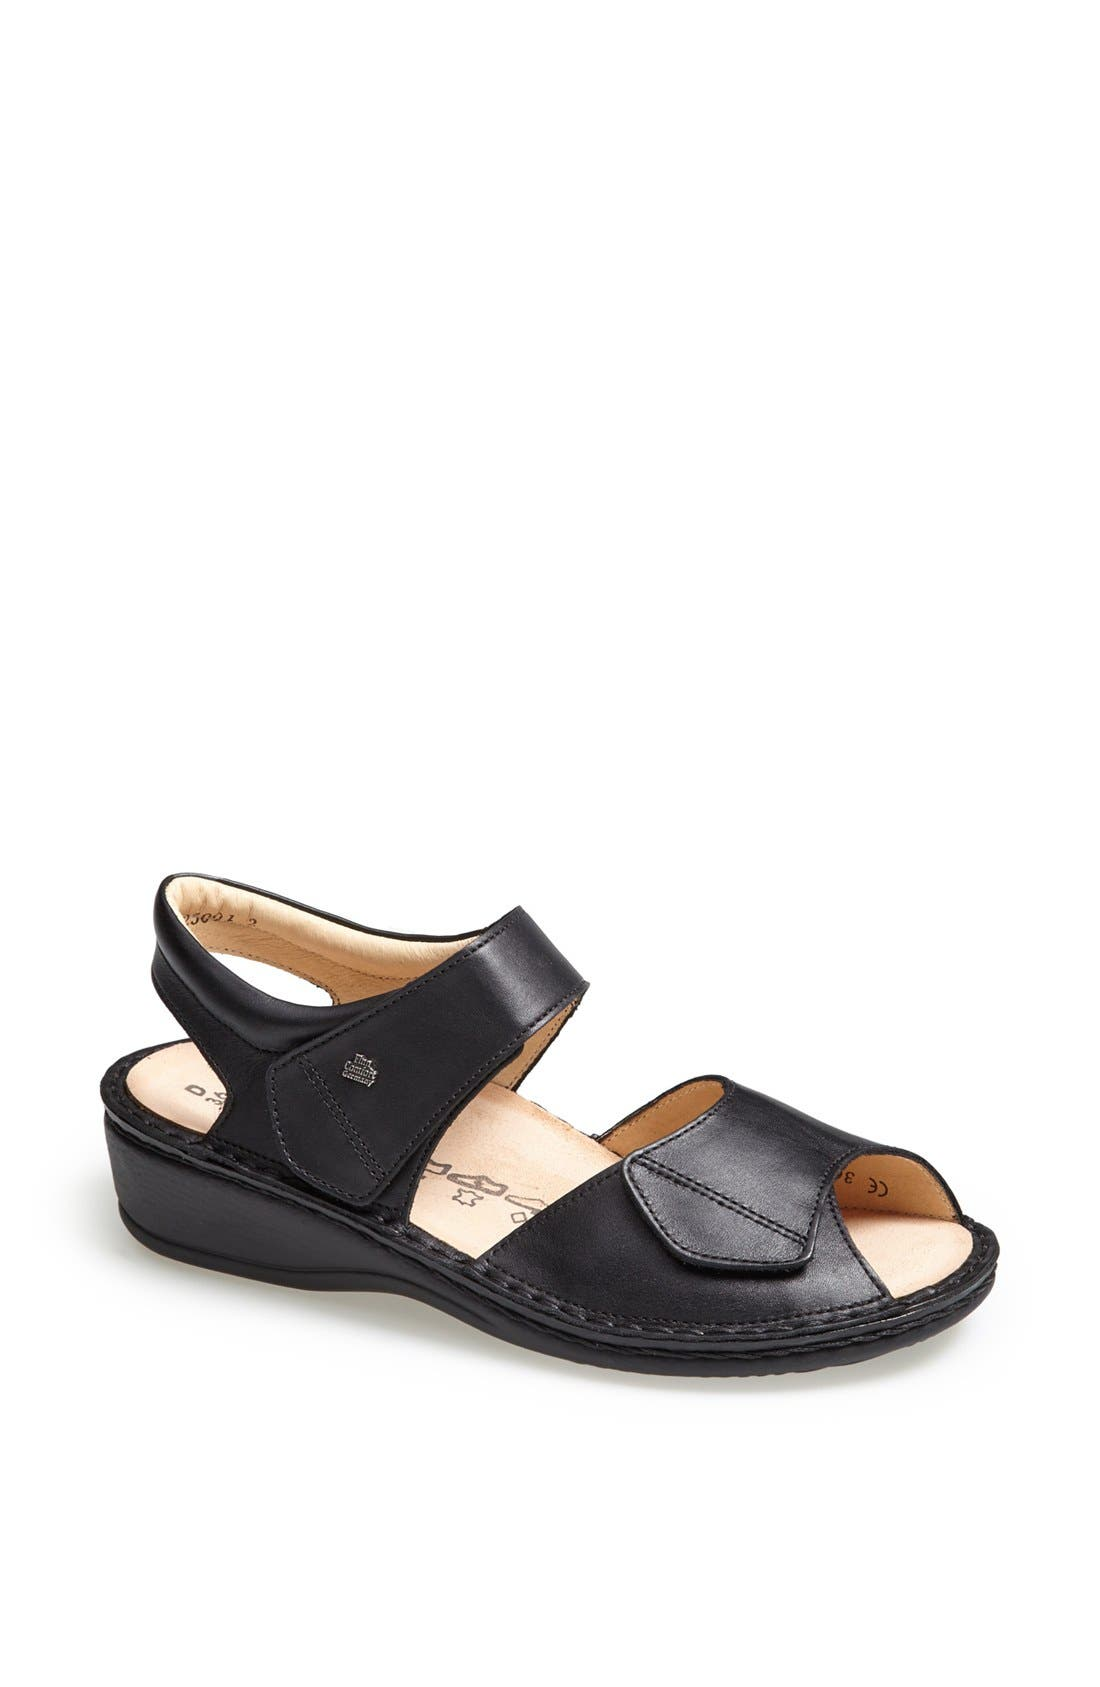 Main Image - Finn Comfort 'Faro-S' Leather Sandal